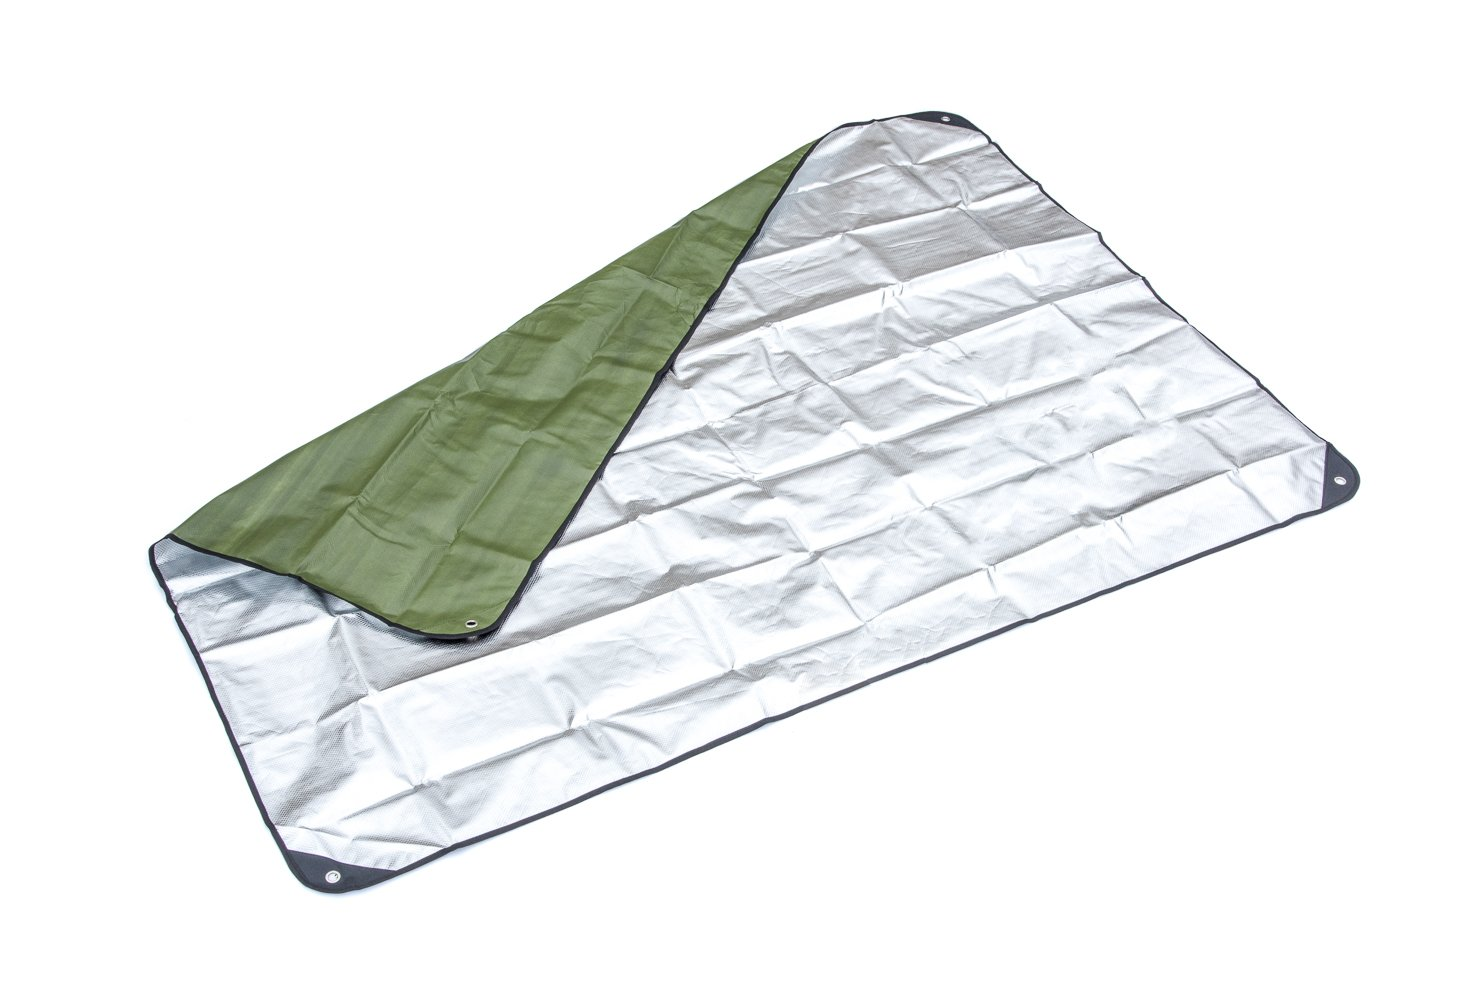 SE EB5983GN Survivor Series Thermal Reflective Waterproof Blanket, Forest/Military Green